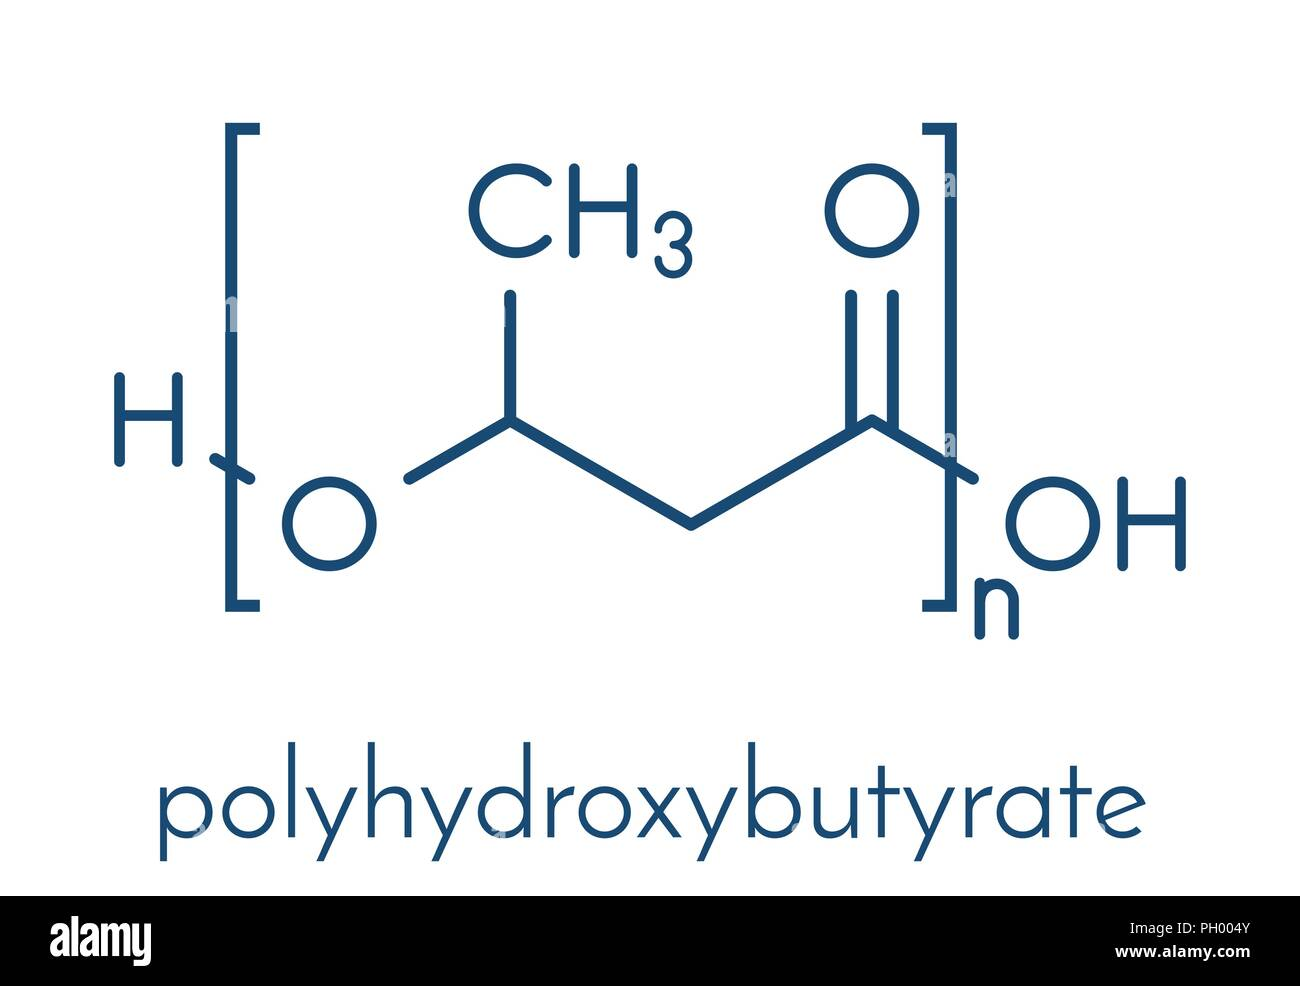 Polyhydroxybutyrate (PHB) biodegradable plastic, chemical structure